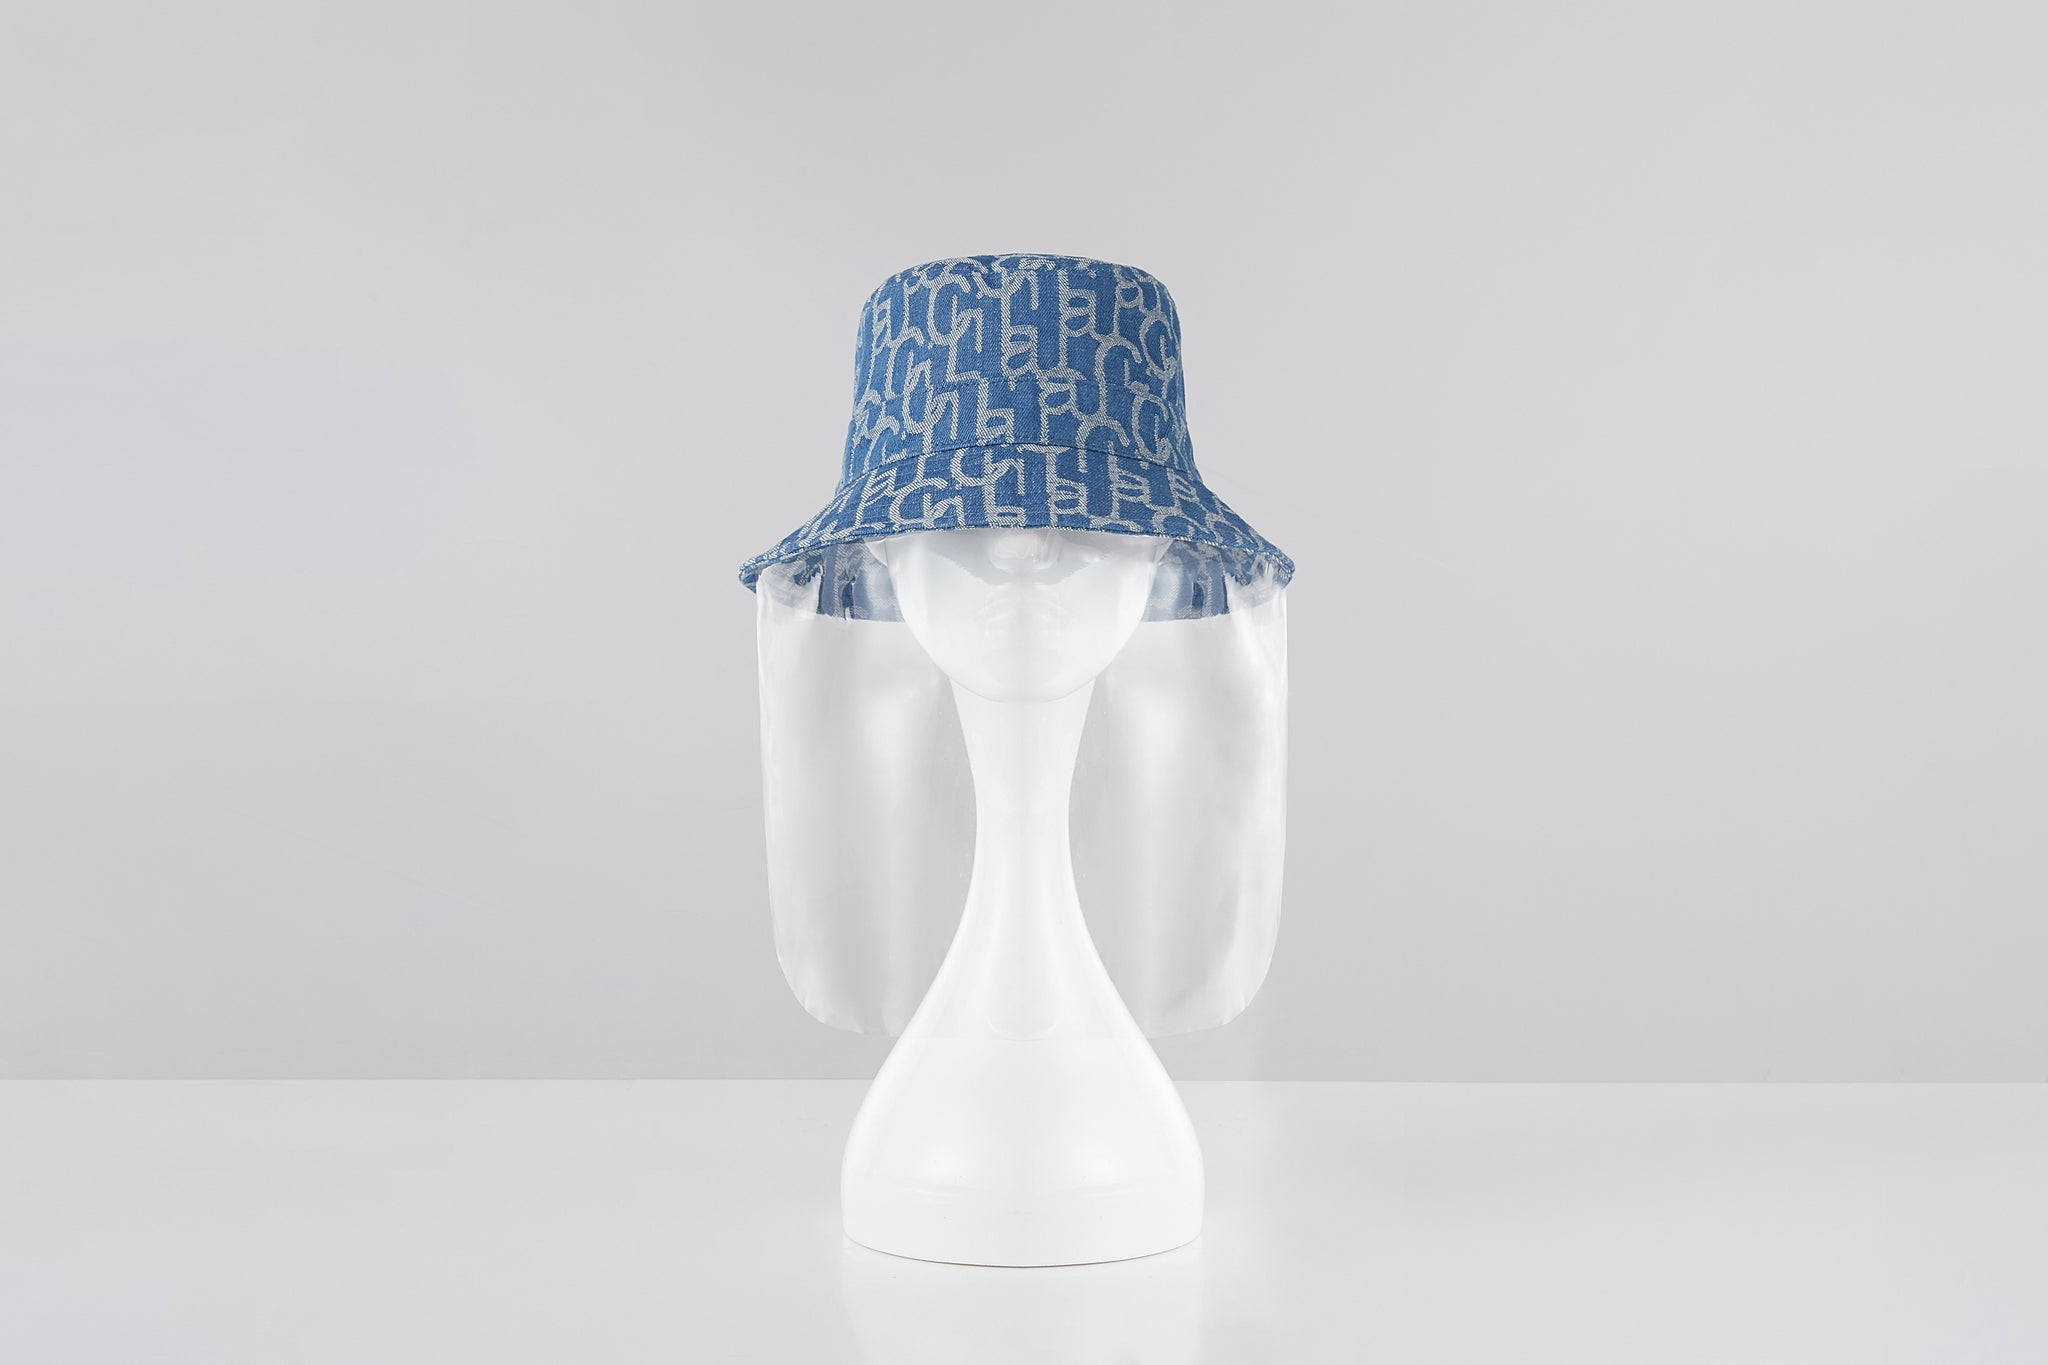 Chichi Laulau Jacquard Bucket Hat, PVC Face Shield, Small Brim, Light Blue